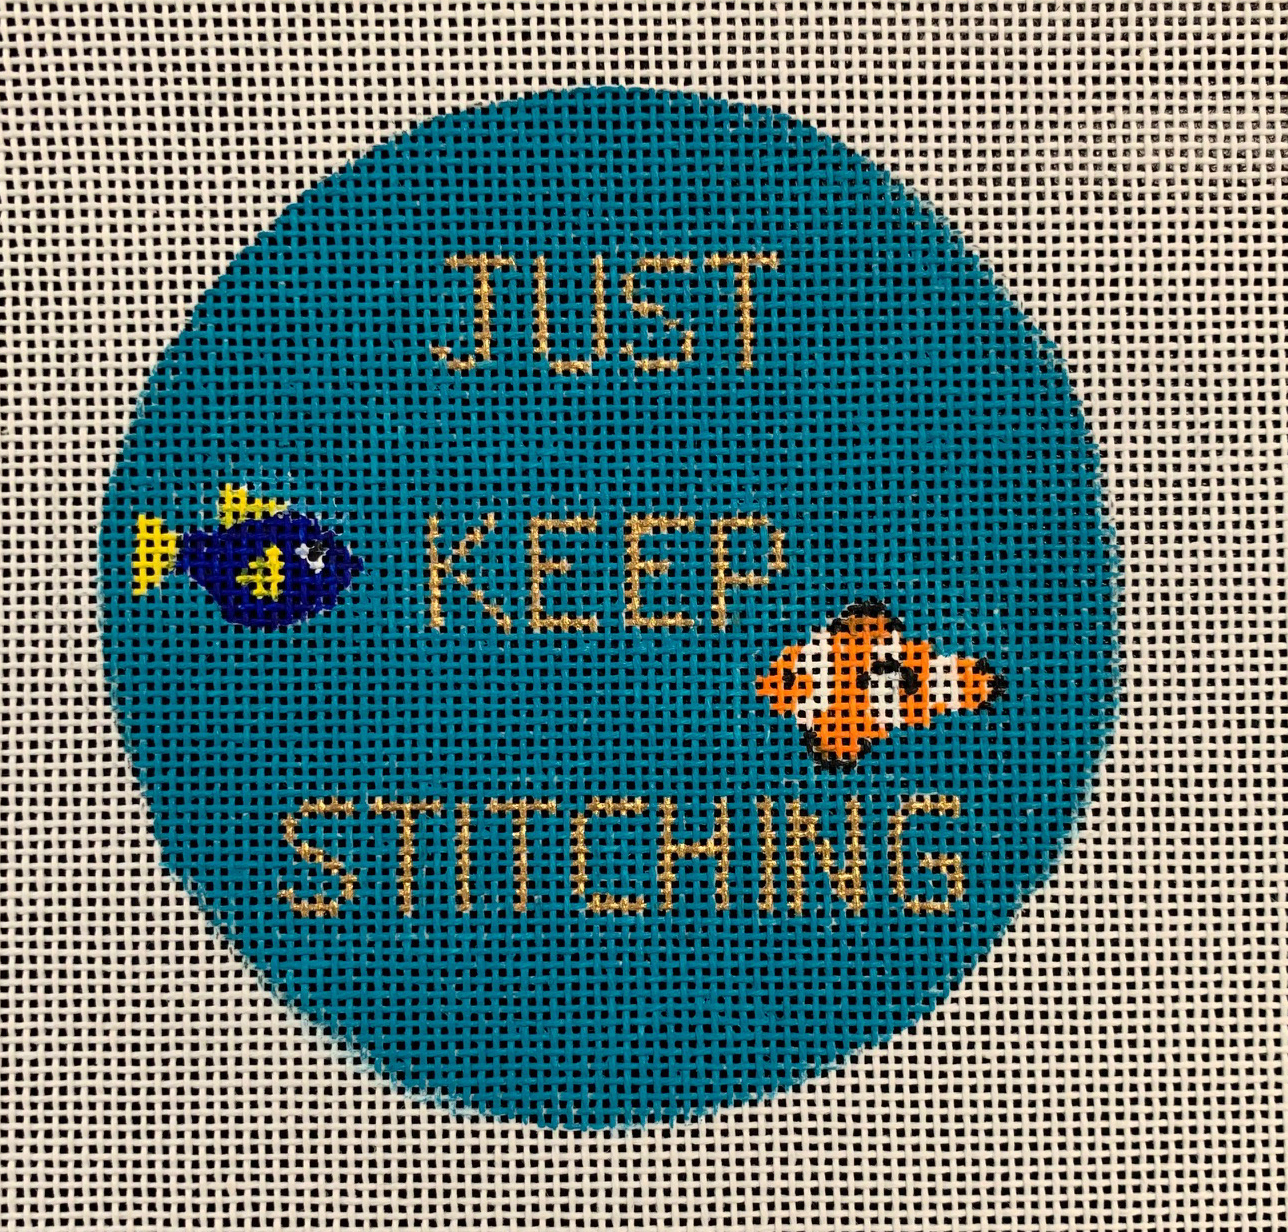 SV-023 Just Keep Stitching